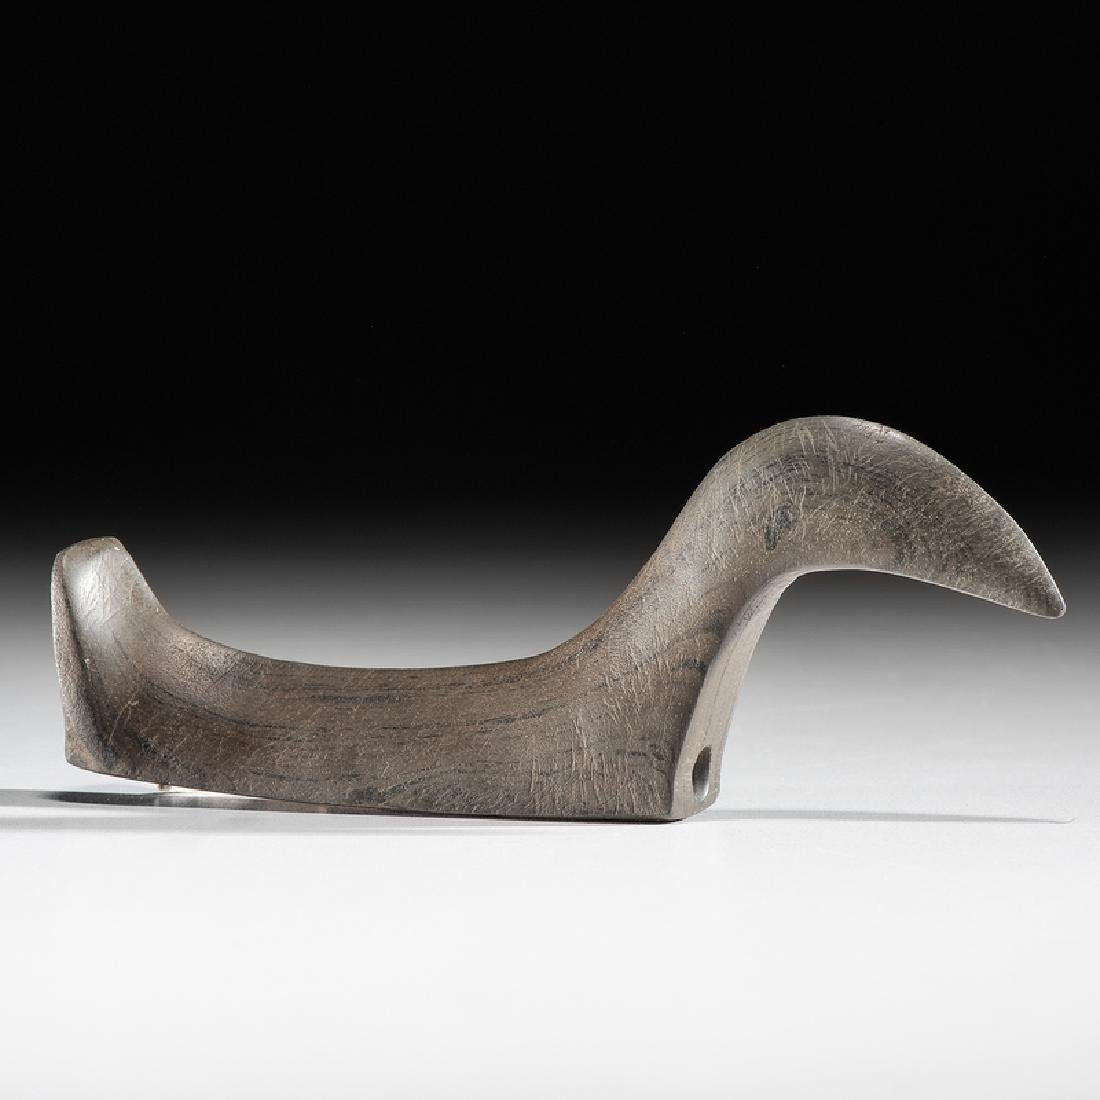 An Elongated Slate, Long Neck Birdstone, From the